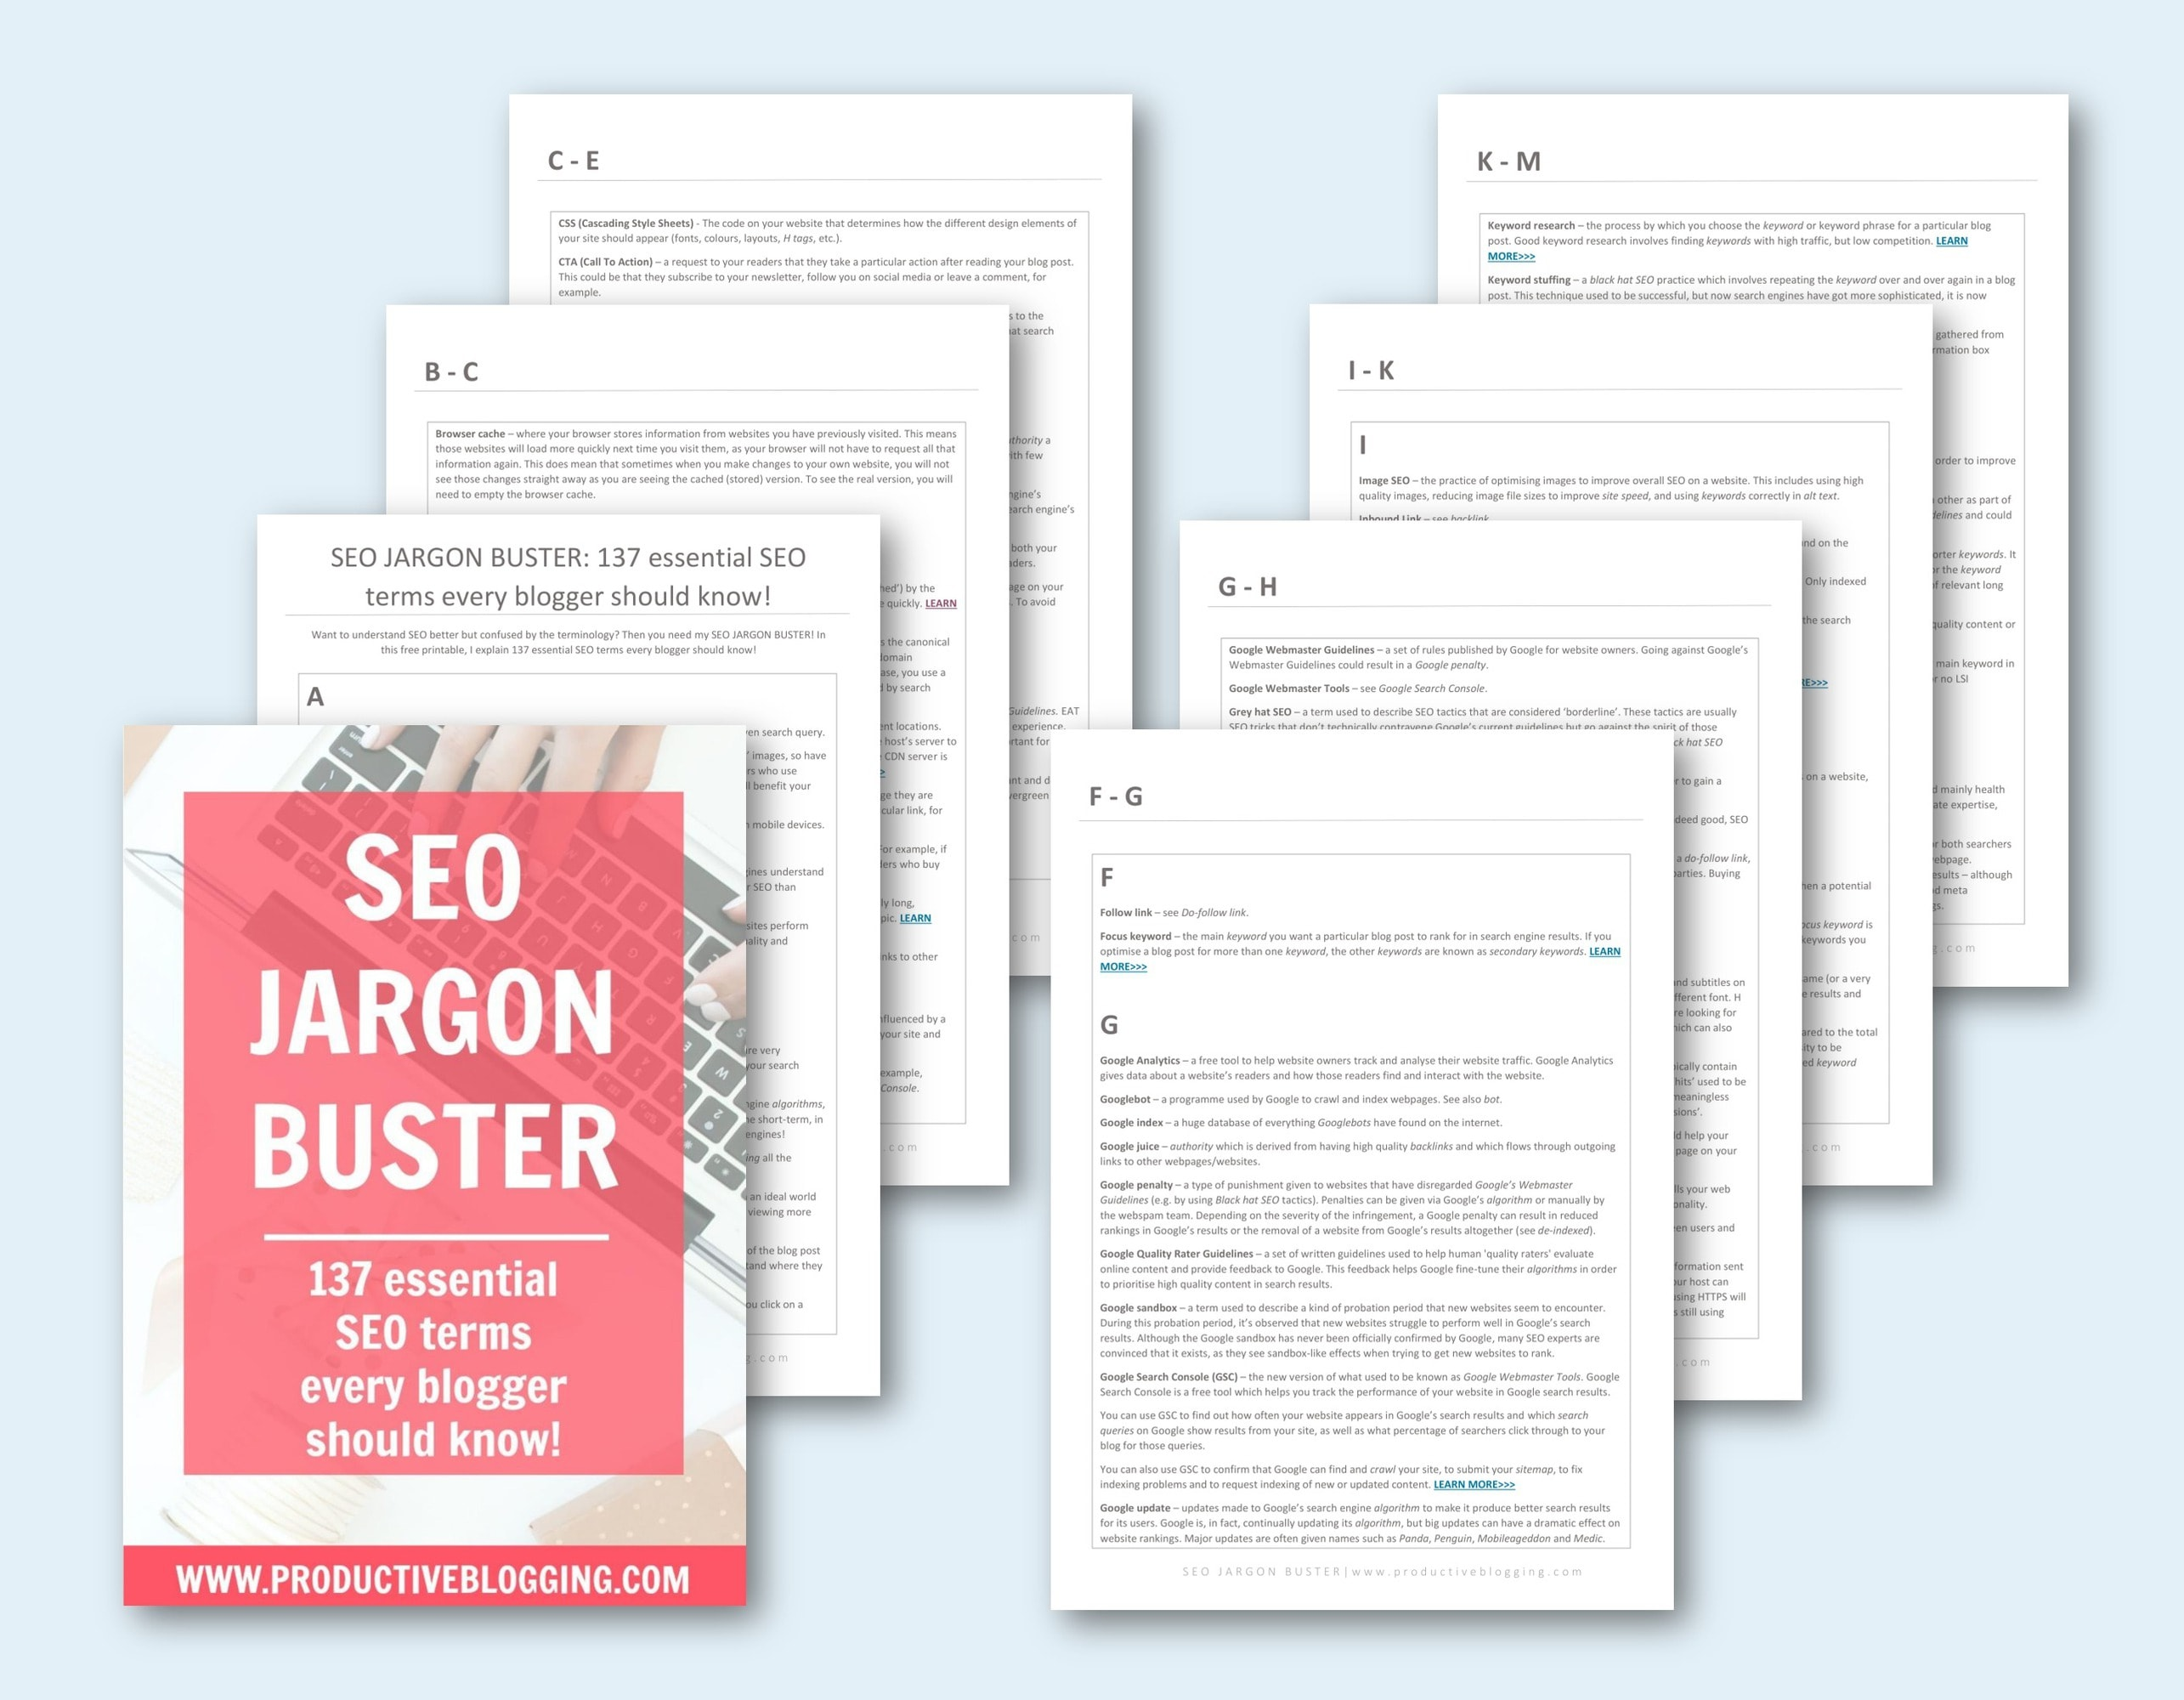 Want to understand SEO better but confused by the terminology? Then you need my SEO JARGON BUSTER! In this free printable, I explain 137 essential SEO terms every blogger should know – everything from Keyword Cannibalisation to Canonicals, H tags to Panda, and a whole lot more! #seojargon #seojargonbuster #essentialseoterms #seoterms #seovocabulary #seoterminology #seodictionary #seocheatsheet #seoglossary #seoatoz #seotips #seohacks #SEO #productiveblogging